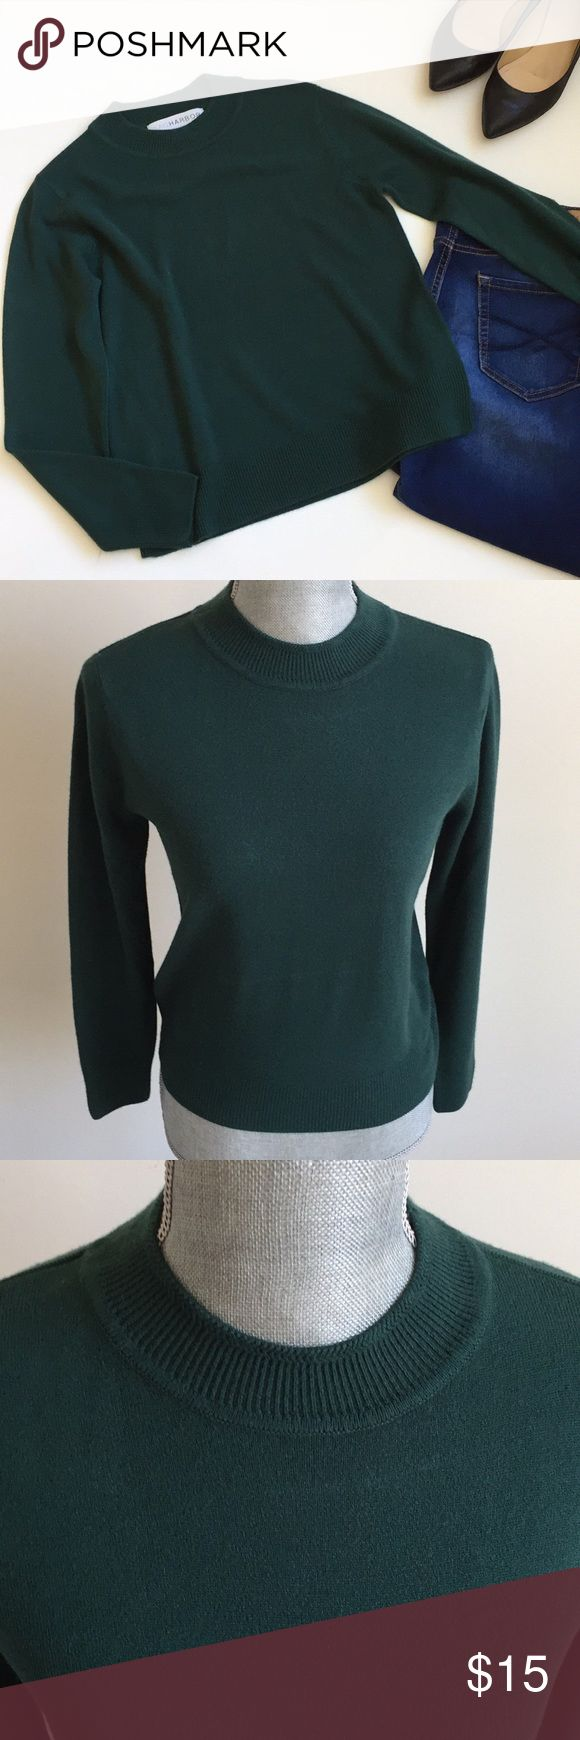 Sag Harbor Sweater Like new dark green high neck sweater. Long sleeve. Super soft. Made with 100% acrylic. No flaws. Sag Harbor Sweaters